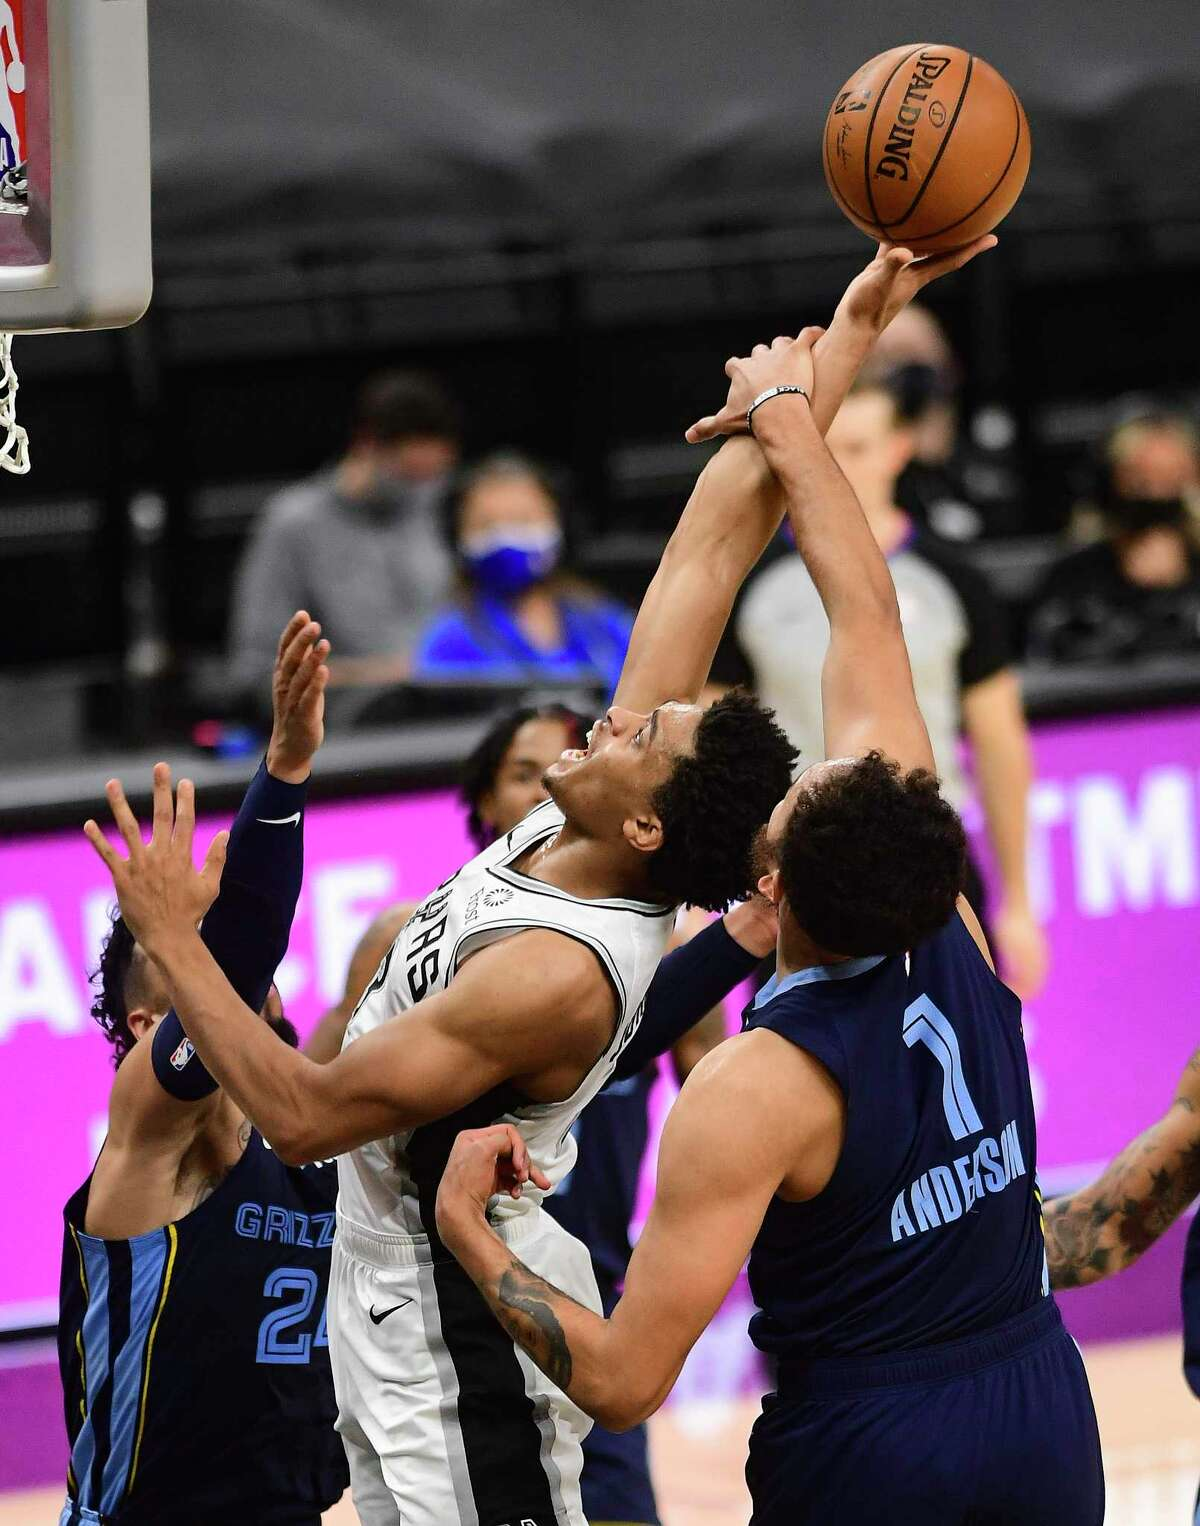 Keldon Johnson of the San Antonio Spurs, middle, shoots and scores as he is fouled by Kyle Anderson (1) of the Memphis Grizzlies during second-half NBA action in the AT&T Center on Monday, Feb. 1. 2021. Johnson scored on the ensuing free throw.